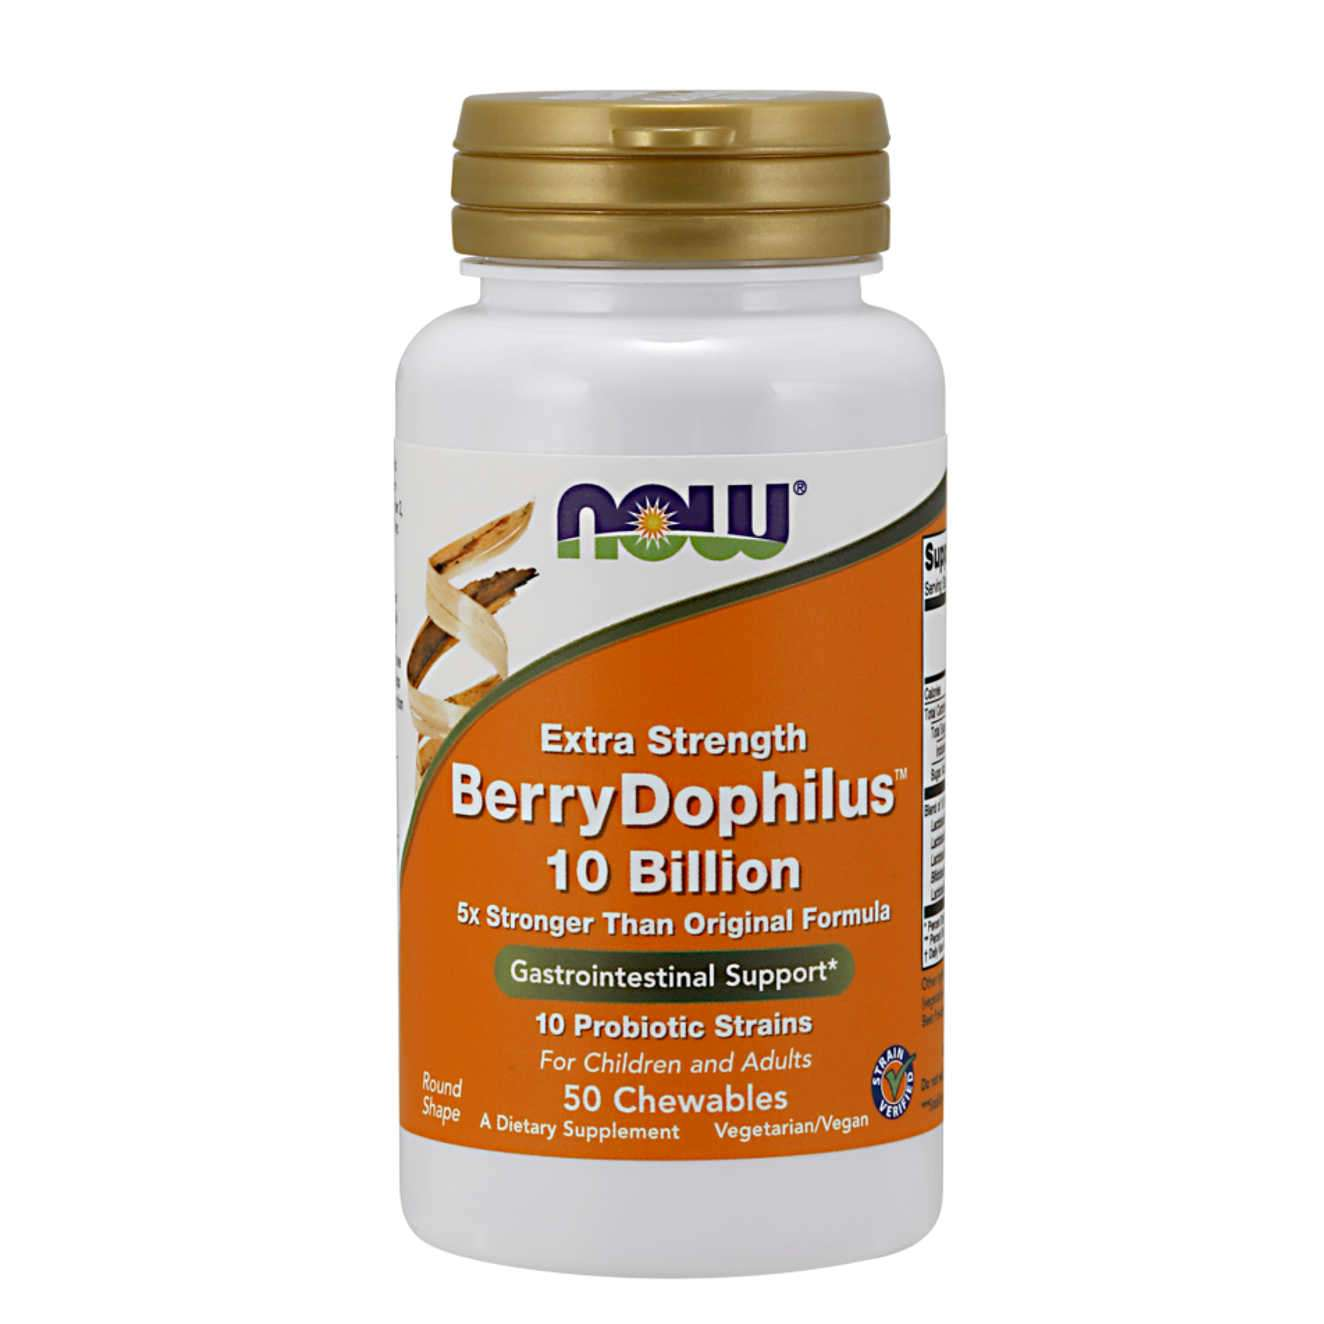 EXTRA STRENGHT BERRYDOPHILUS 10 BILLION - 50 tabs masticables